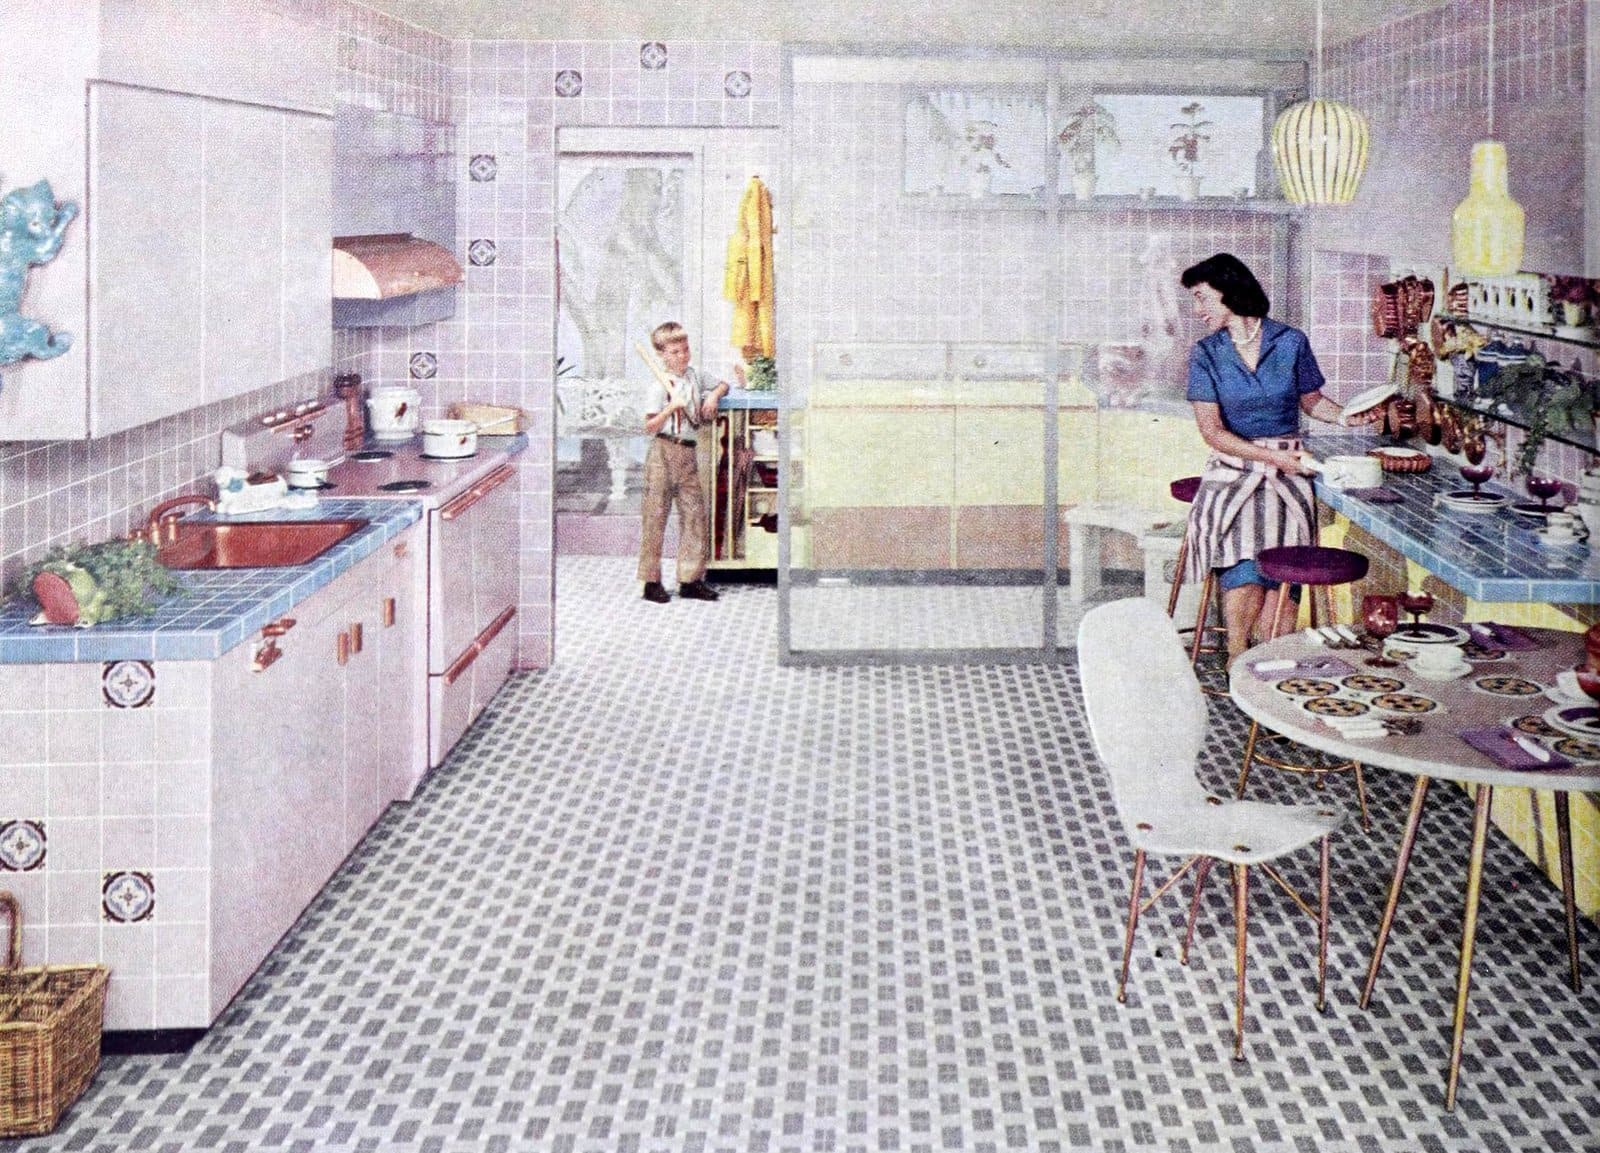 Retro 50s kitchen with lots of ceramic tile decor (1957)